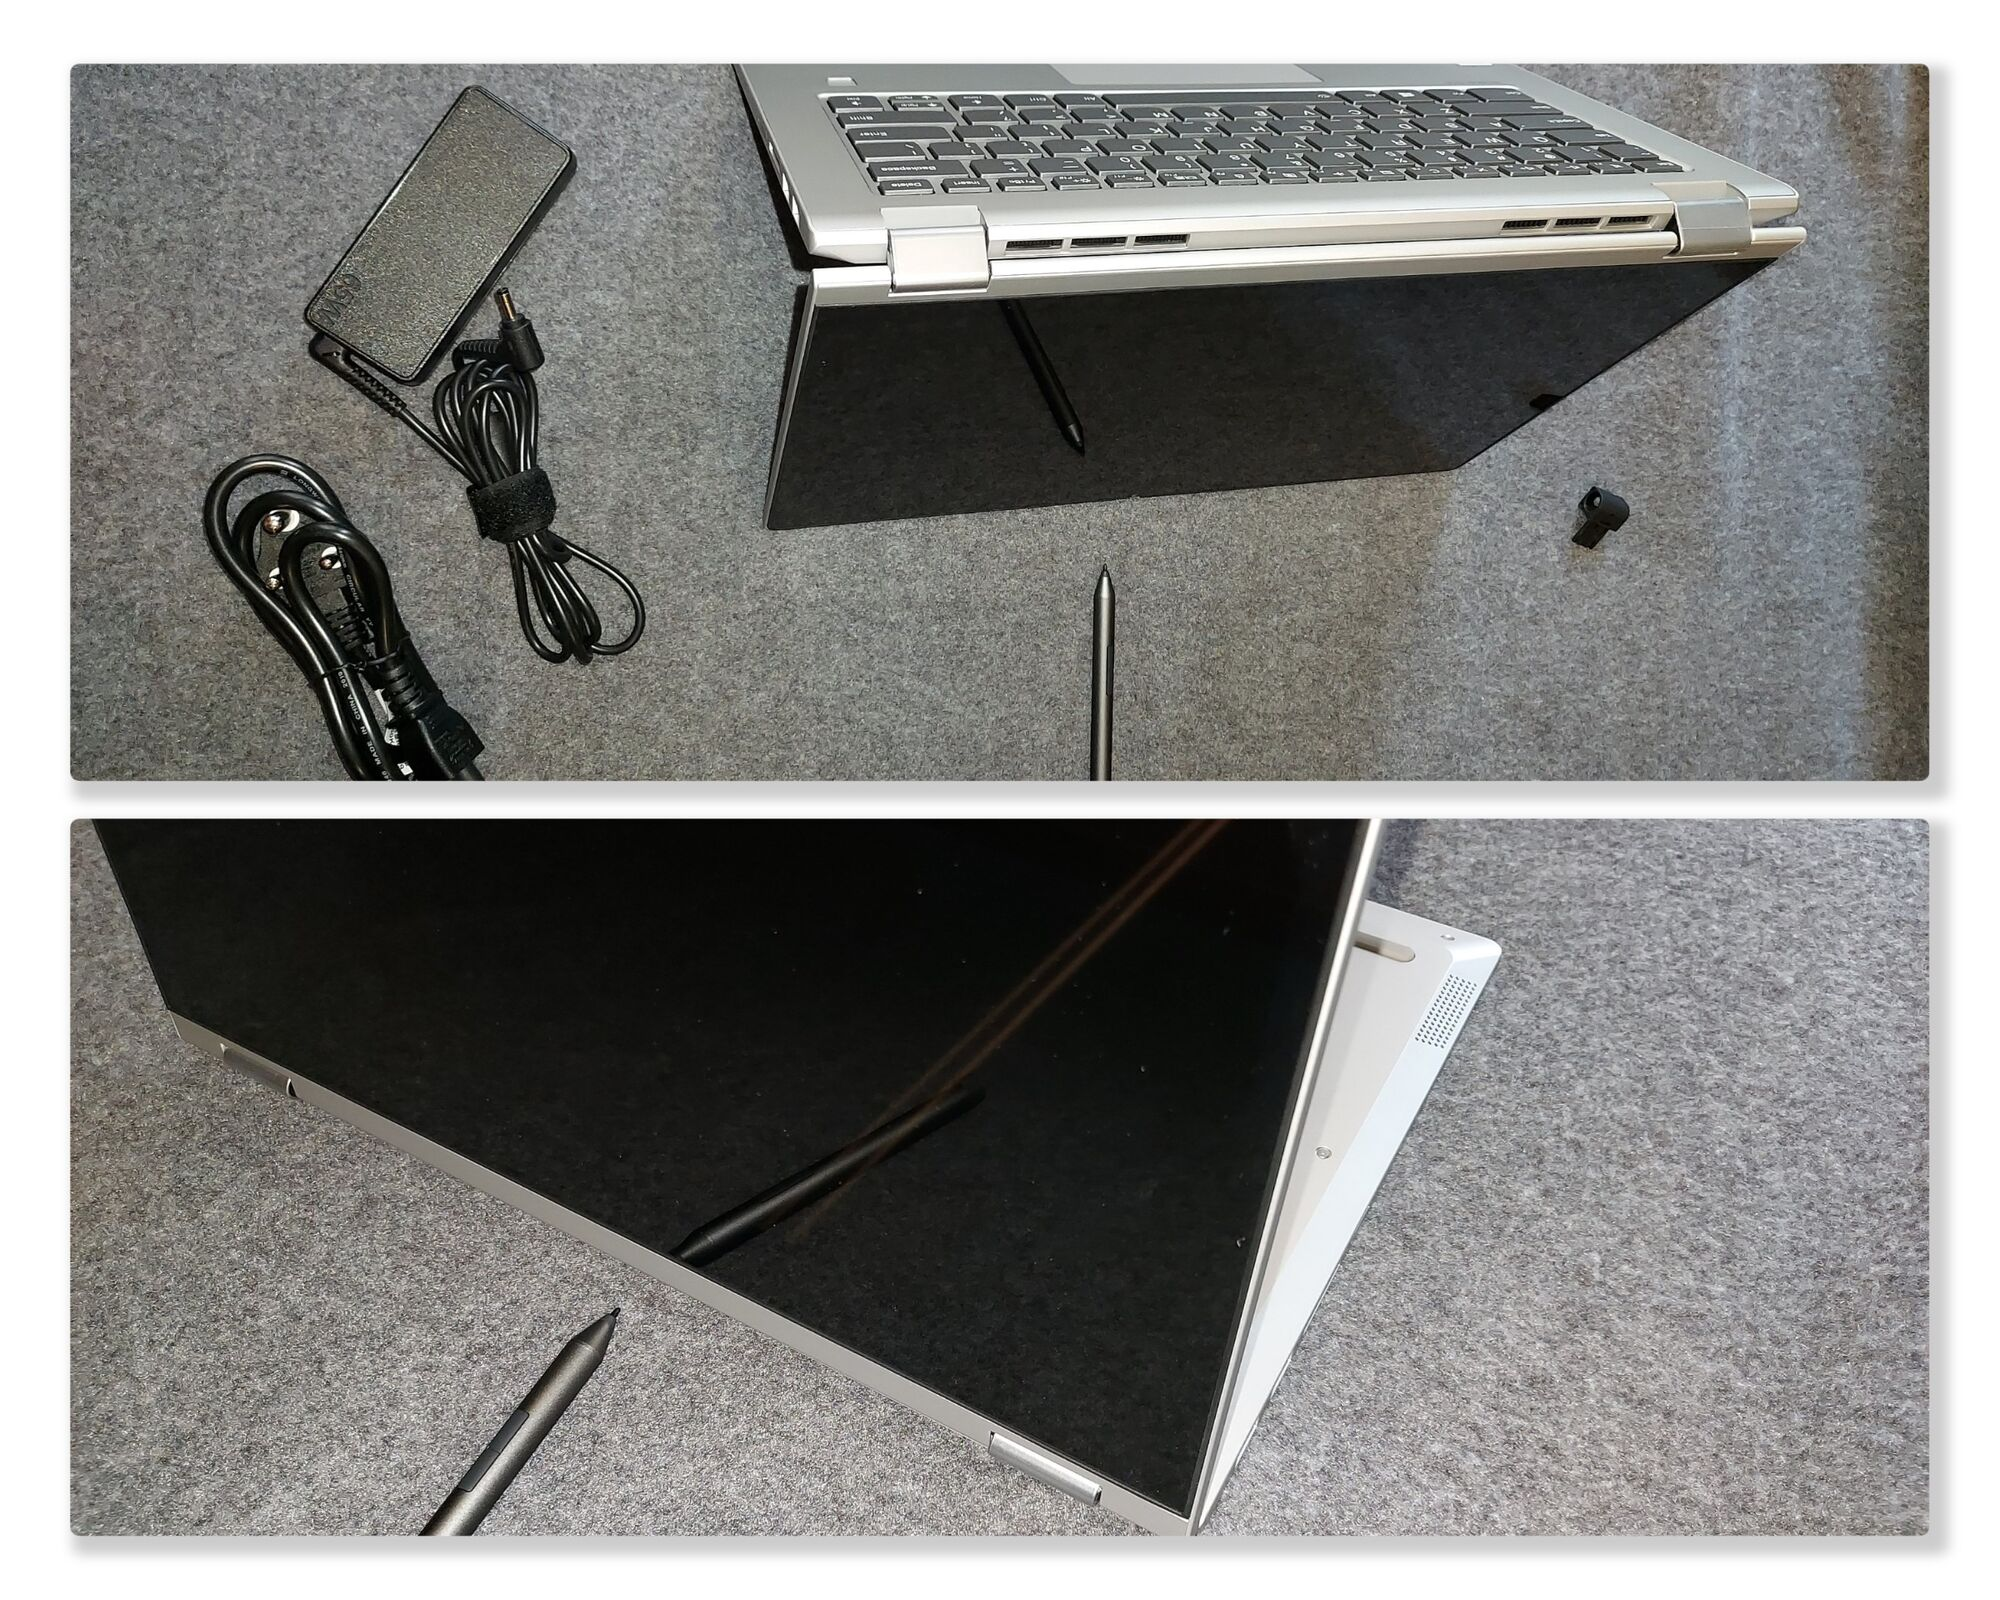 For using the touch surface to write, you can use the laptop in the (top) tent mode or (bottom) in the stand mode.